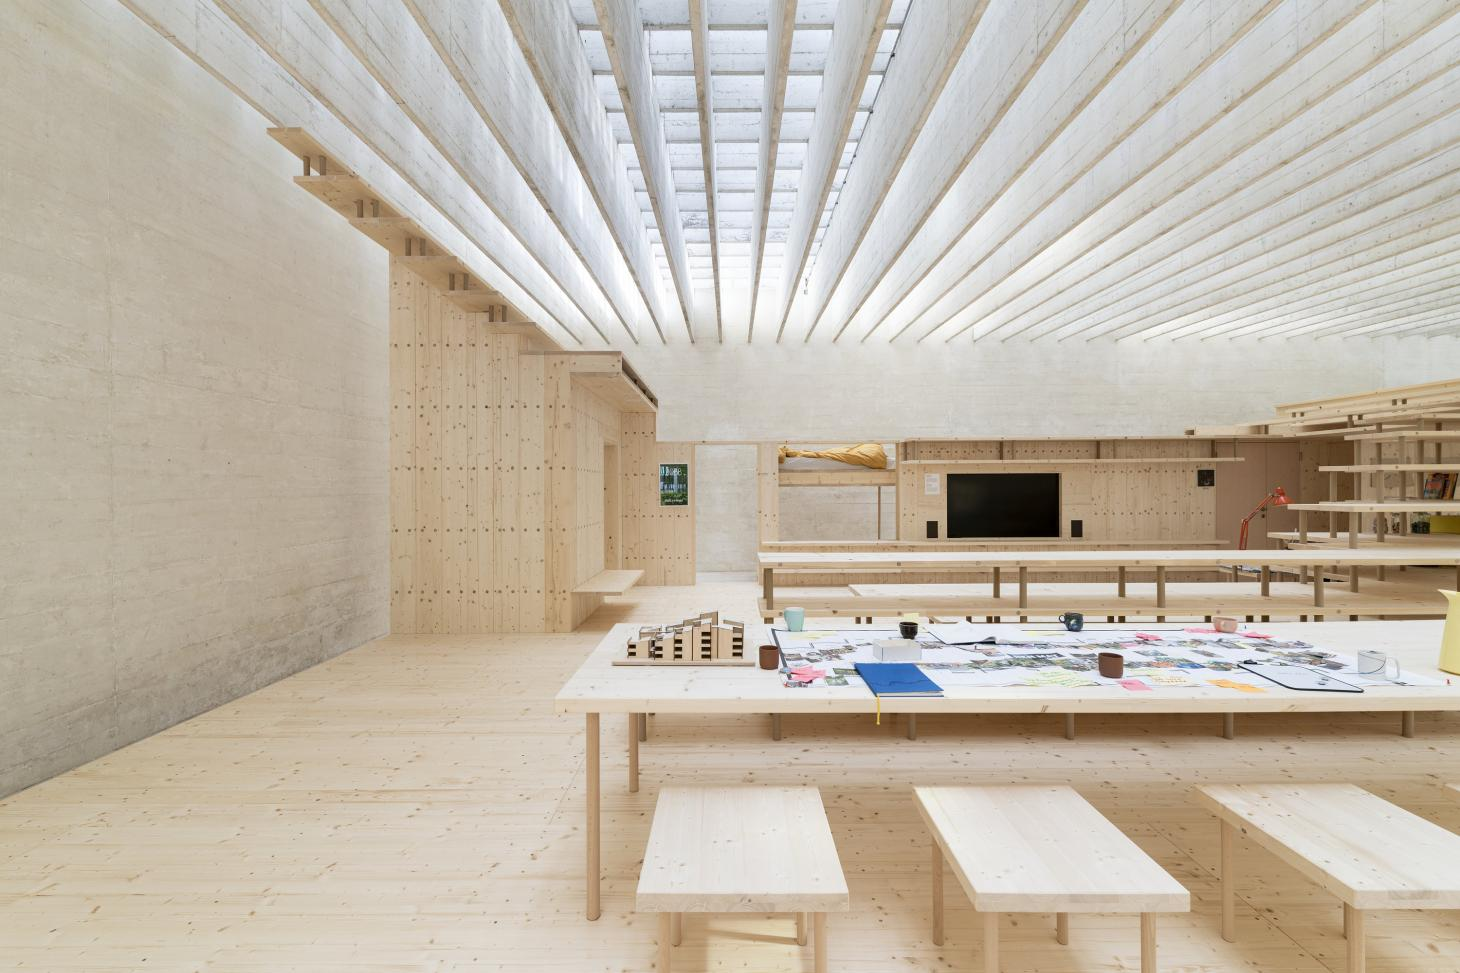 the nordic pavilion at the 2021 Venice architecture biennale houses a timber structure designed by Helen & Hard